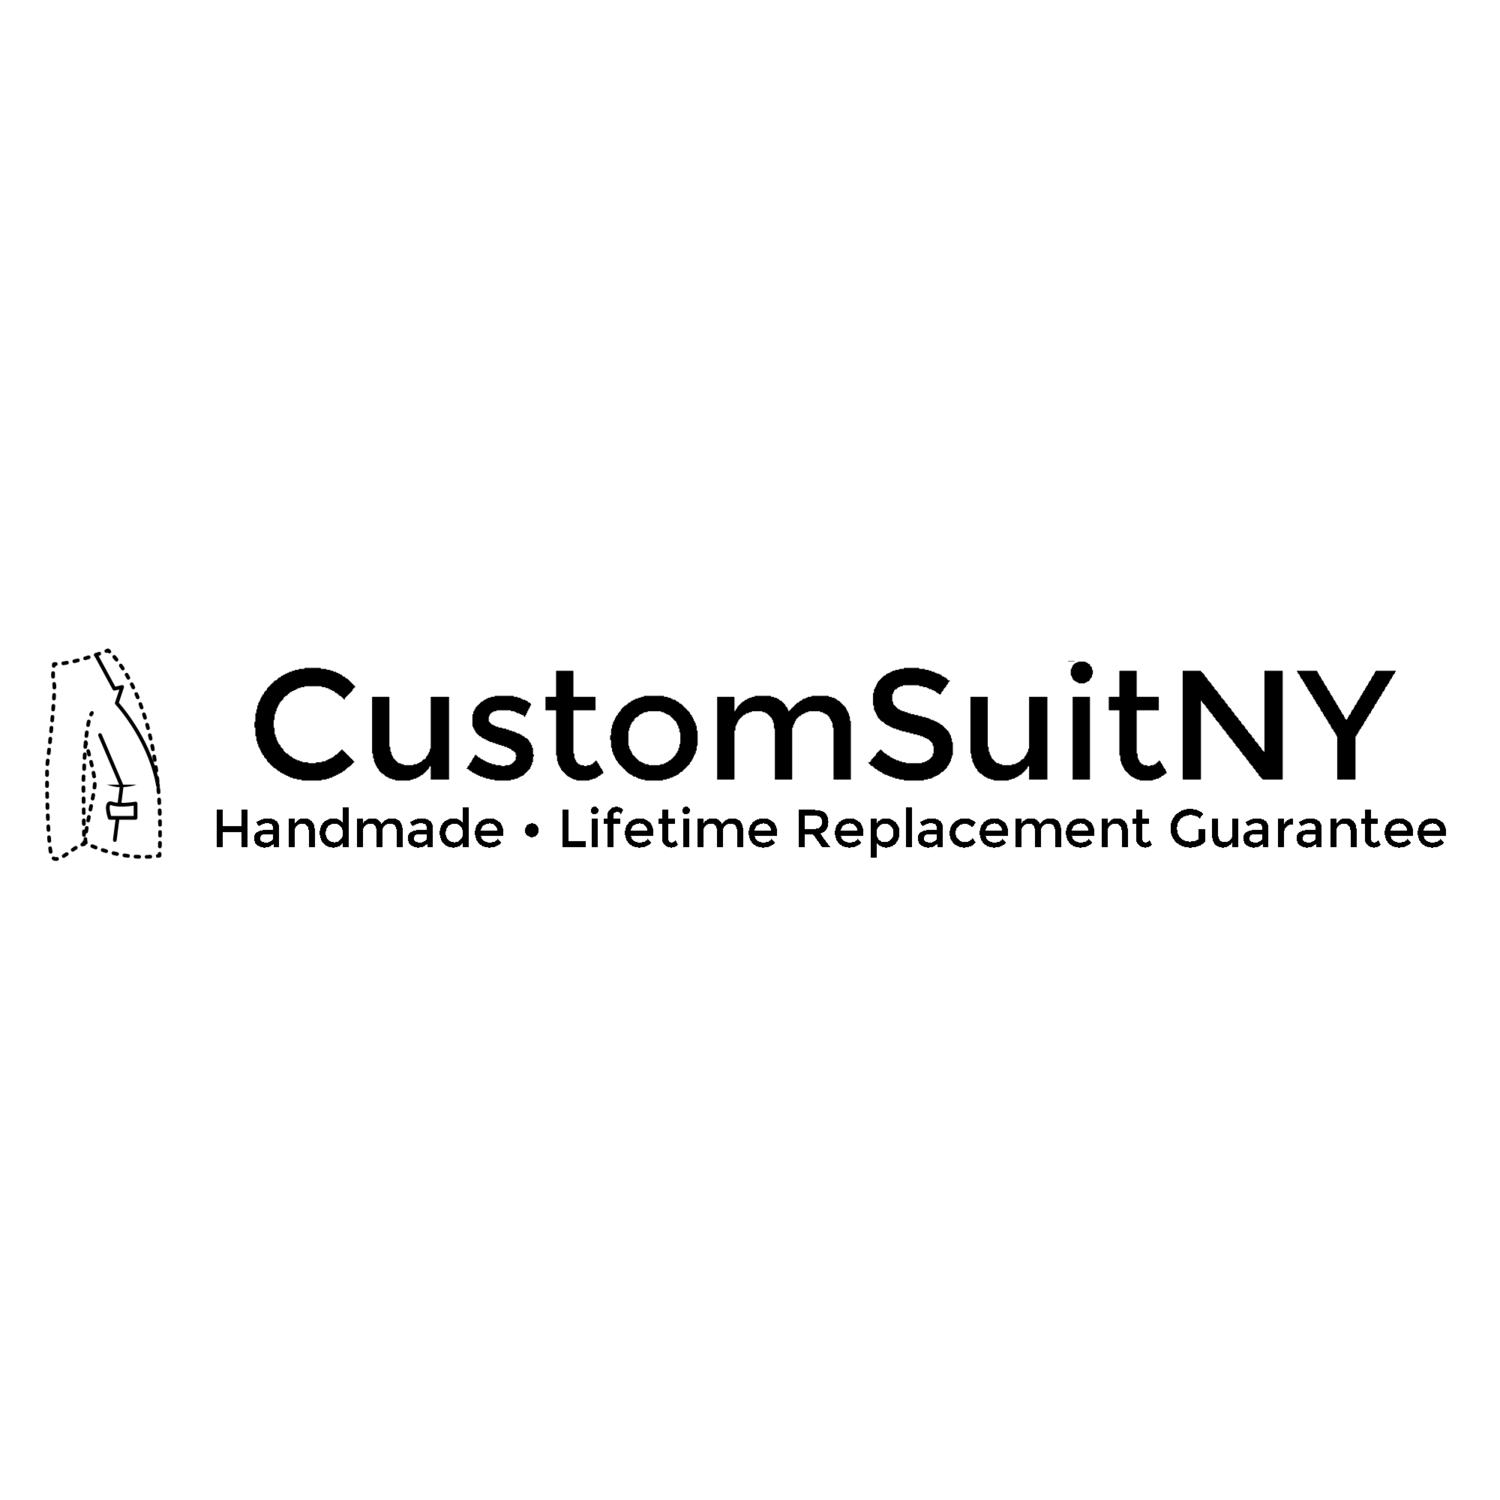 Custom Suit NY, LLC